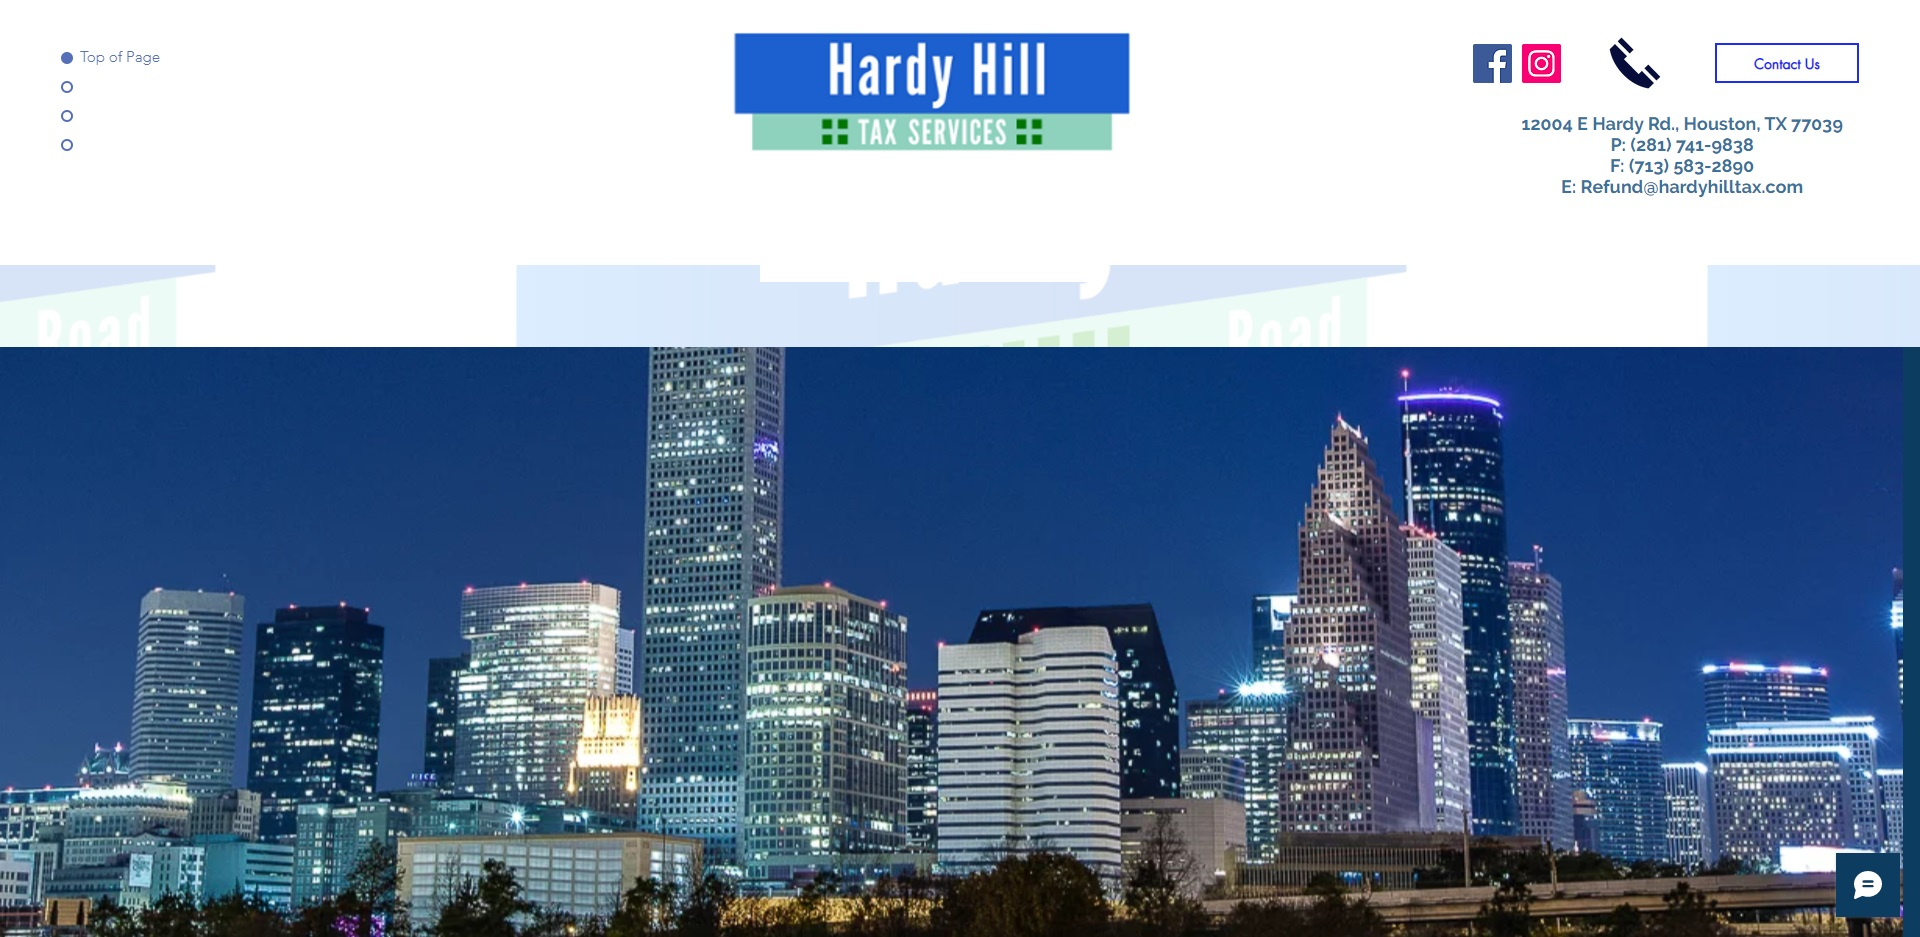 The Best Tax Services in Houston, TX